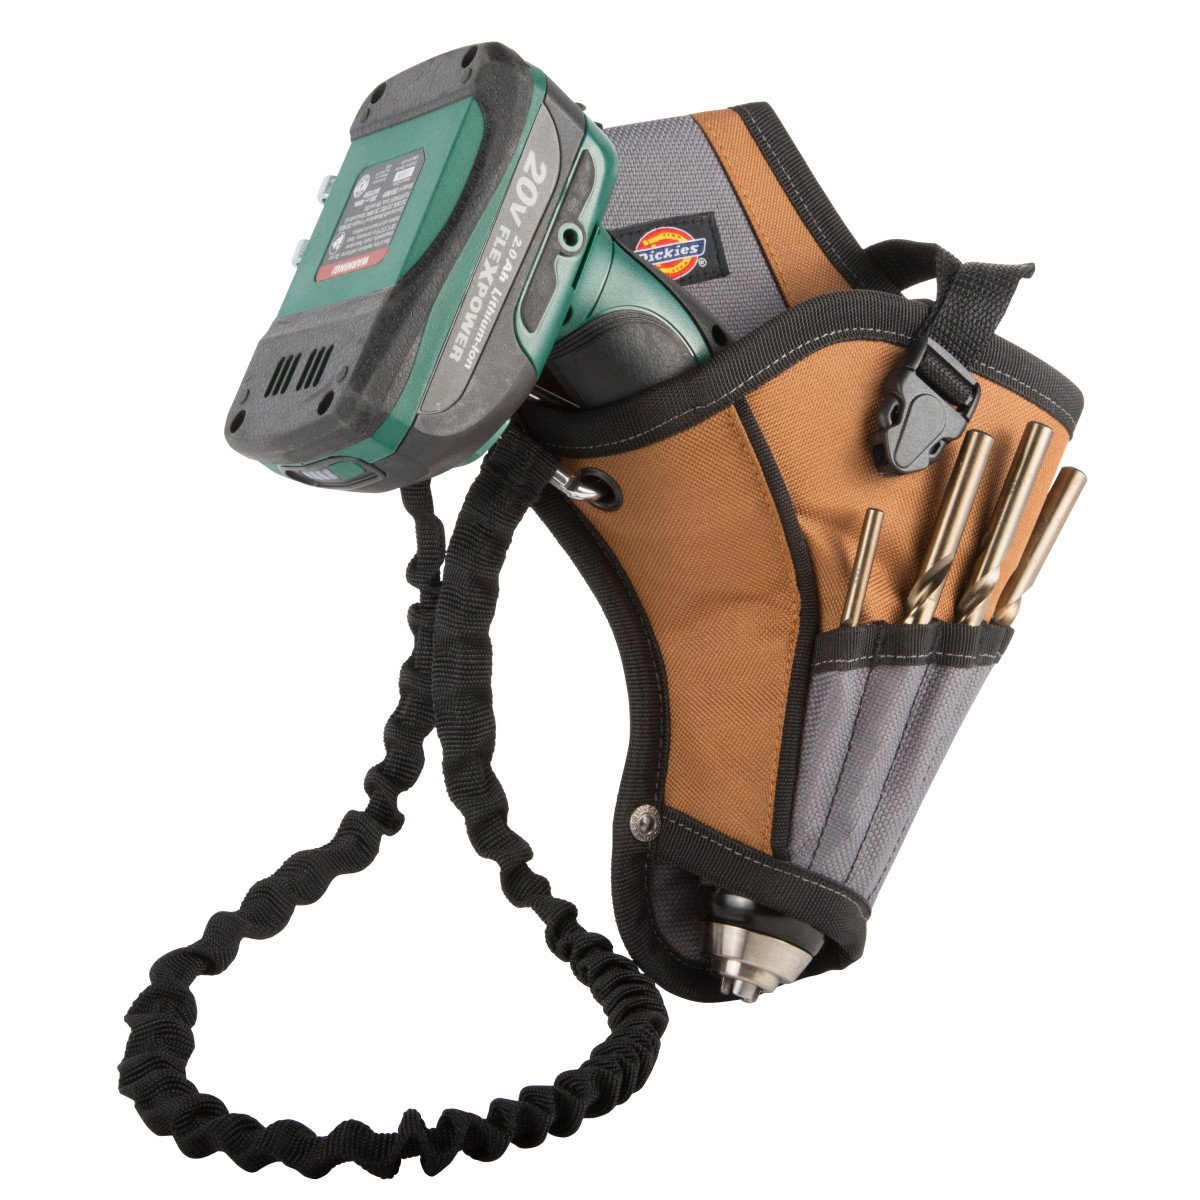 Dickies Work Gear 57097 5-Pocket Drill Holster with Safety Tether by Dickies Work Gear (Image #5)